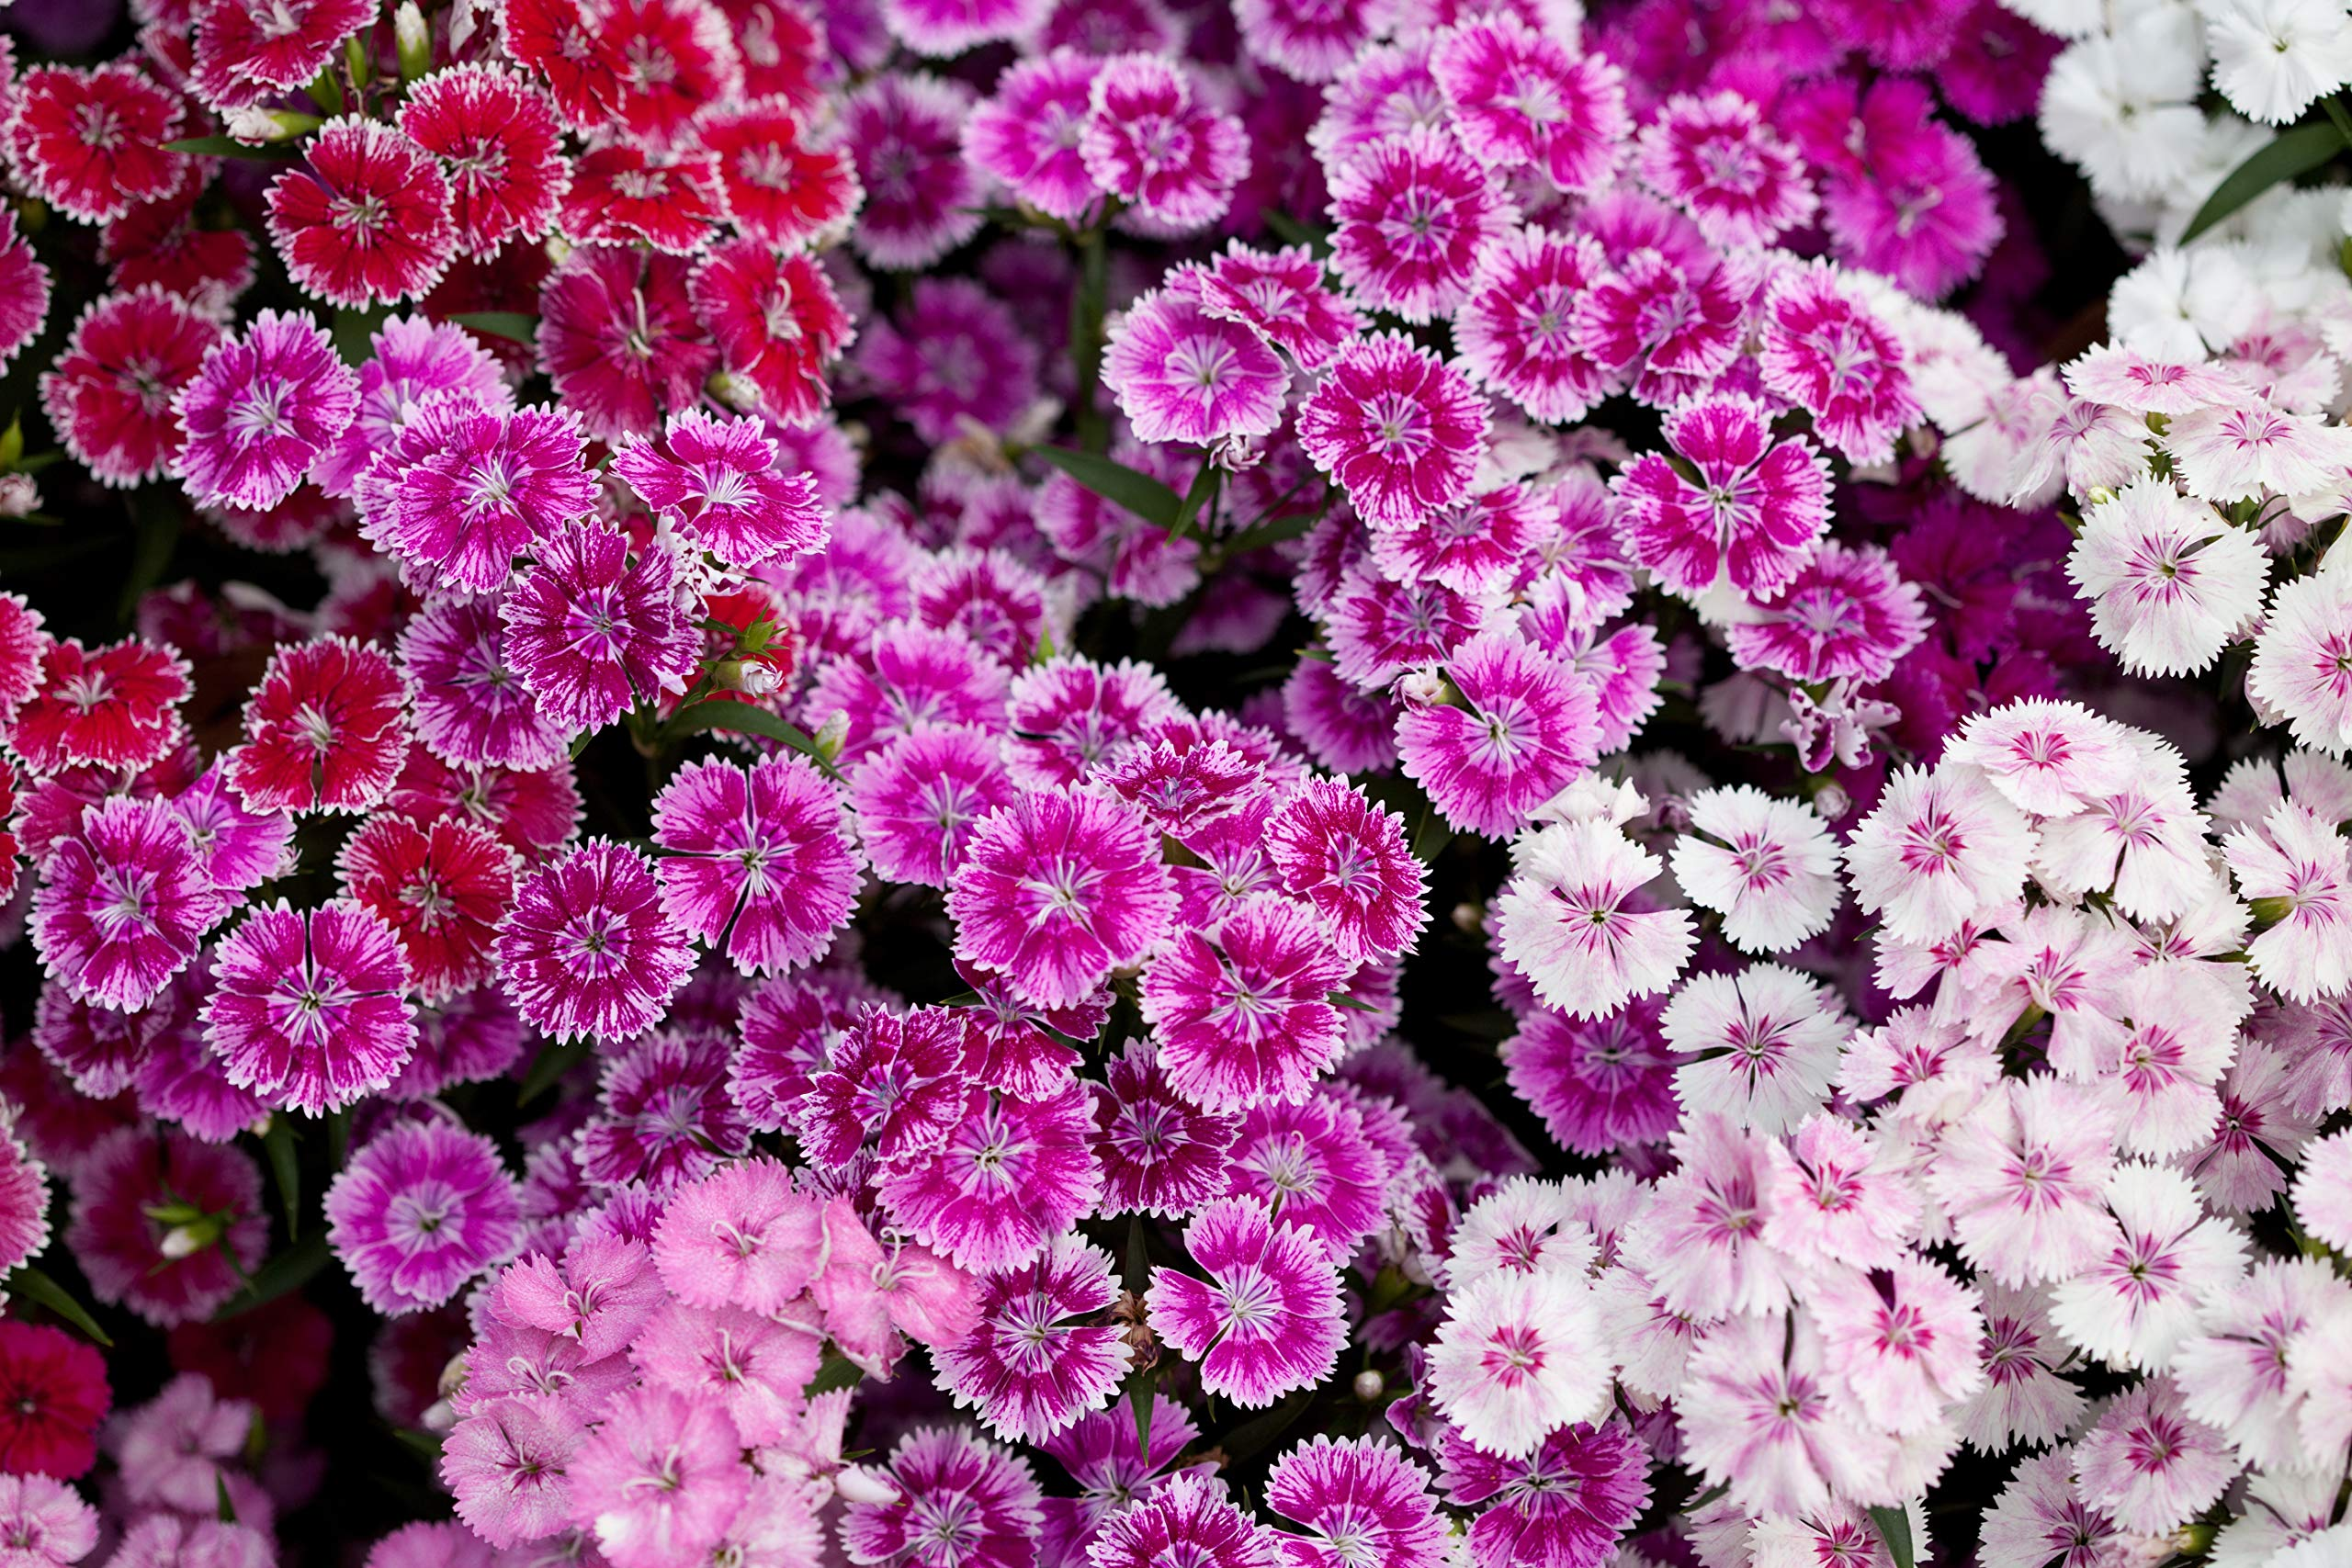 Sweet Yards Seed Co. Sweet William Seeds - Mixed Colors - Bulk One Pound Bag - Over 500,000 Open Pollinated Non-GMO Flower Seeds - Dianthus barbatus by Sweet Yards Seed Co.